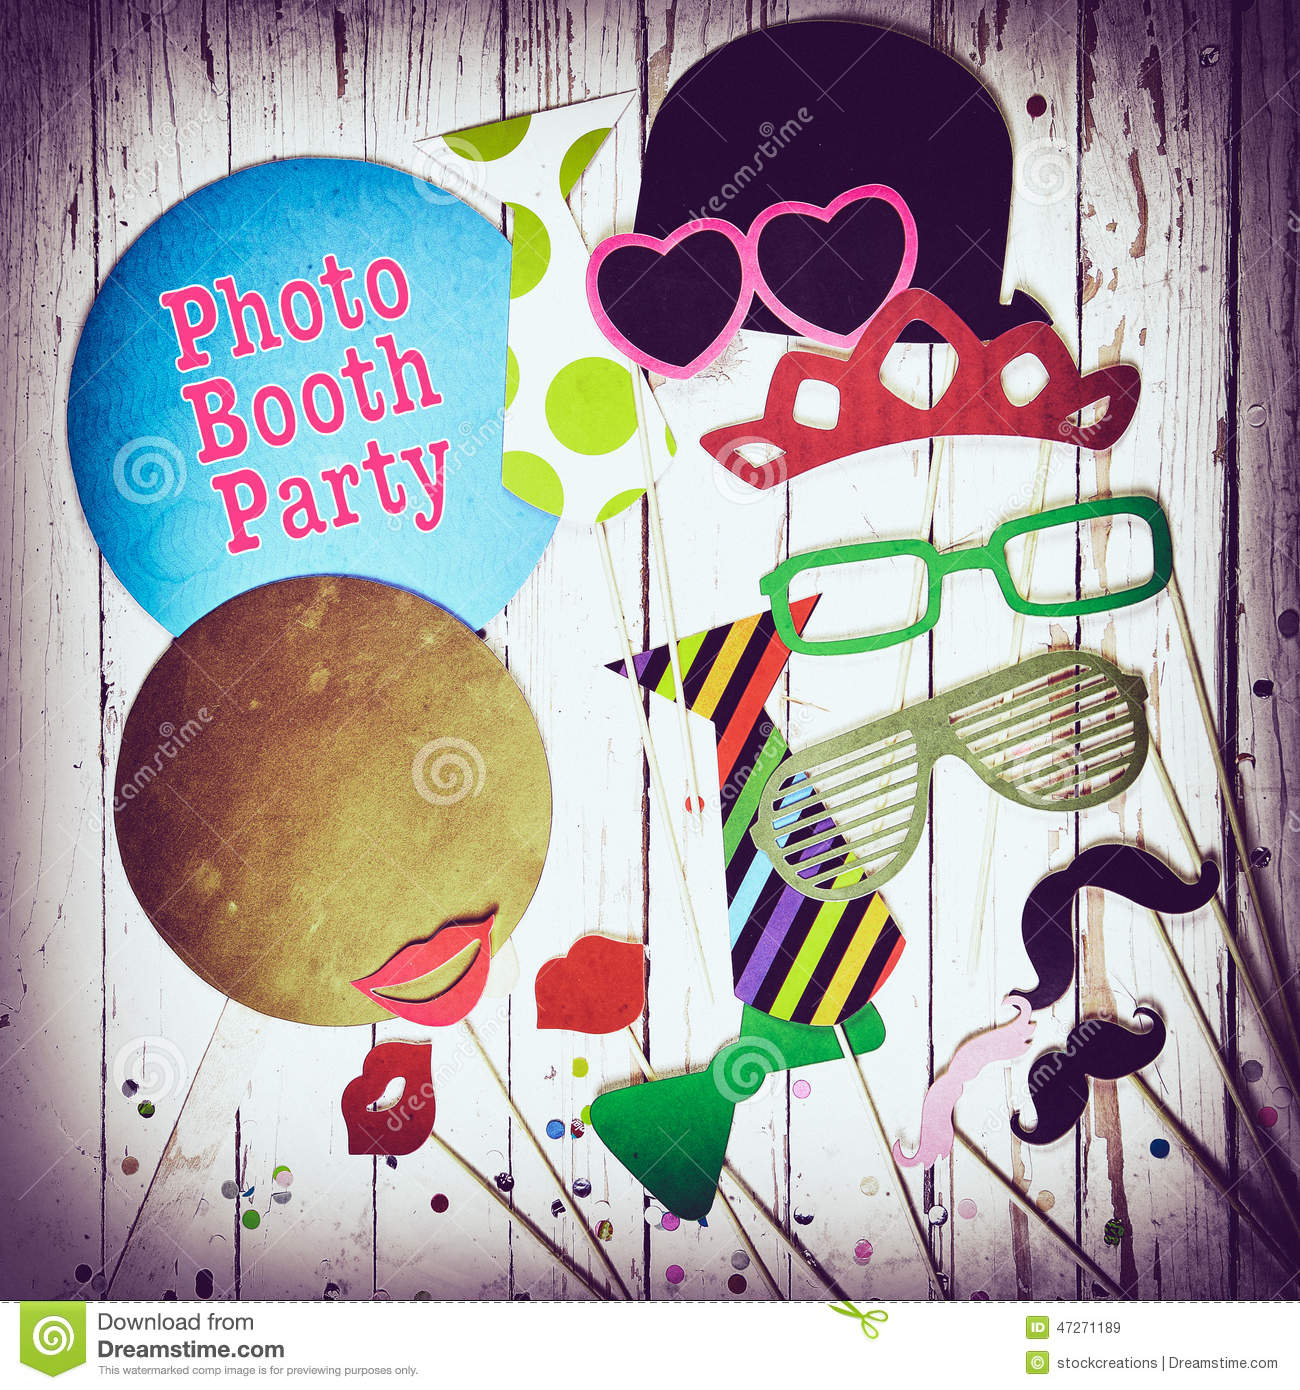 Fun Photo Booth Party Background Stock Image Image 47271189